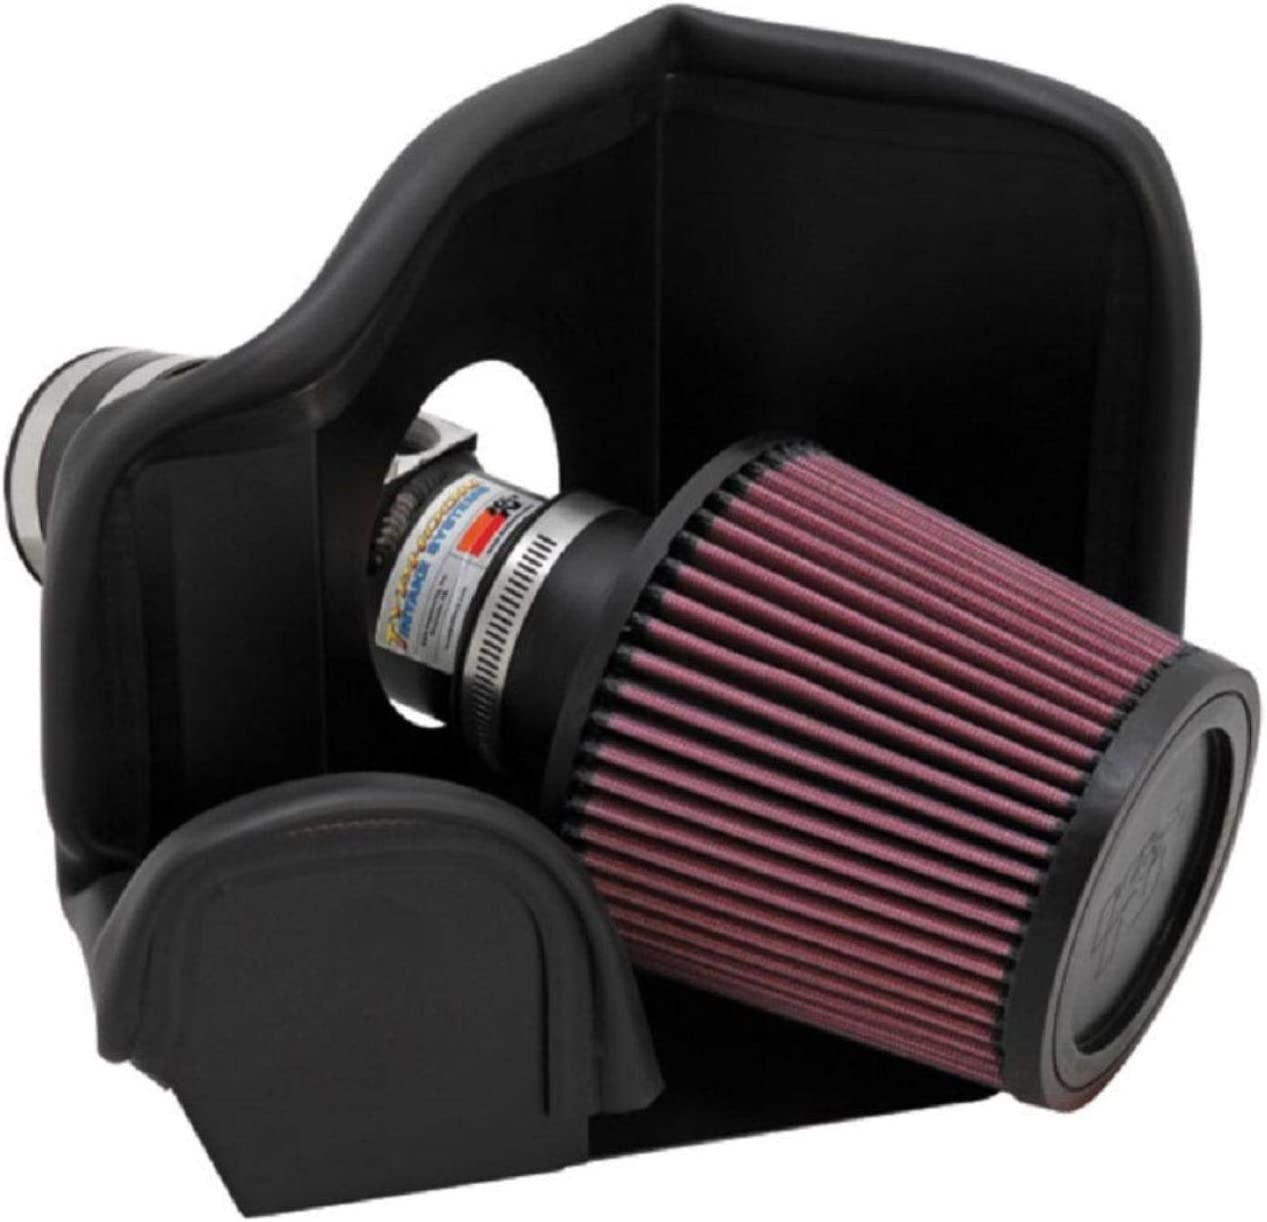 KN Cold excellence shopping Air Intake Kit: Guaranteed High Performance Increas to